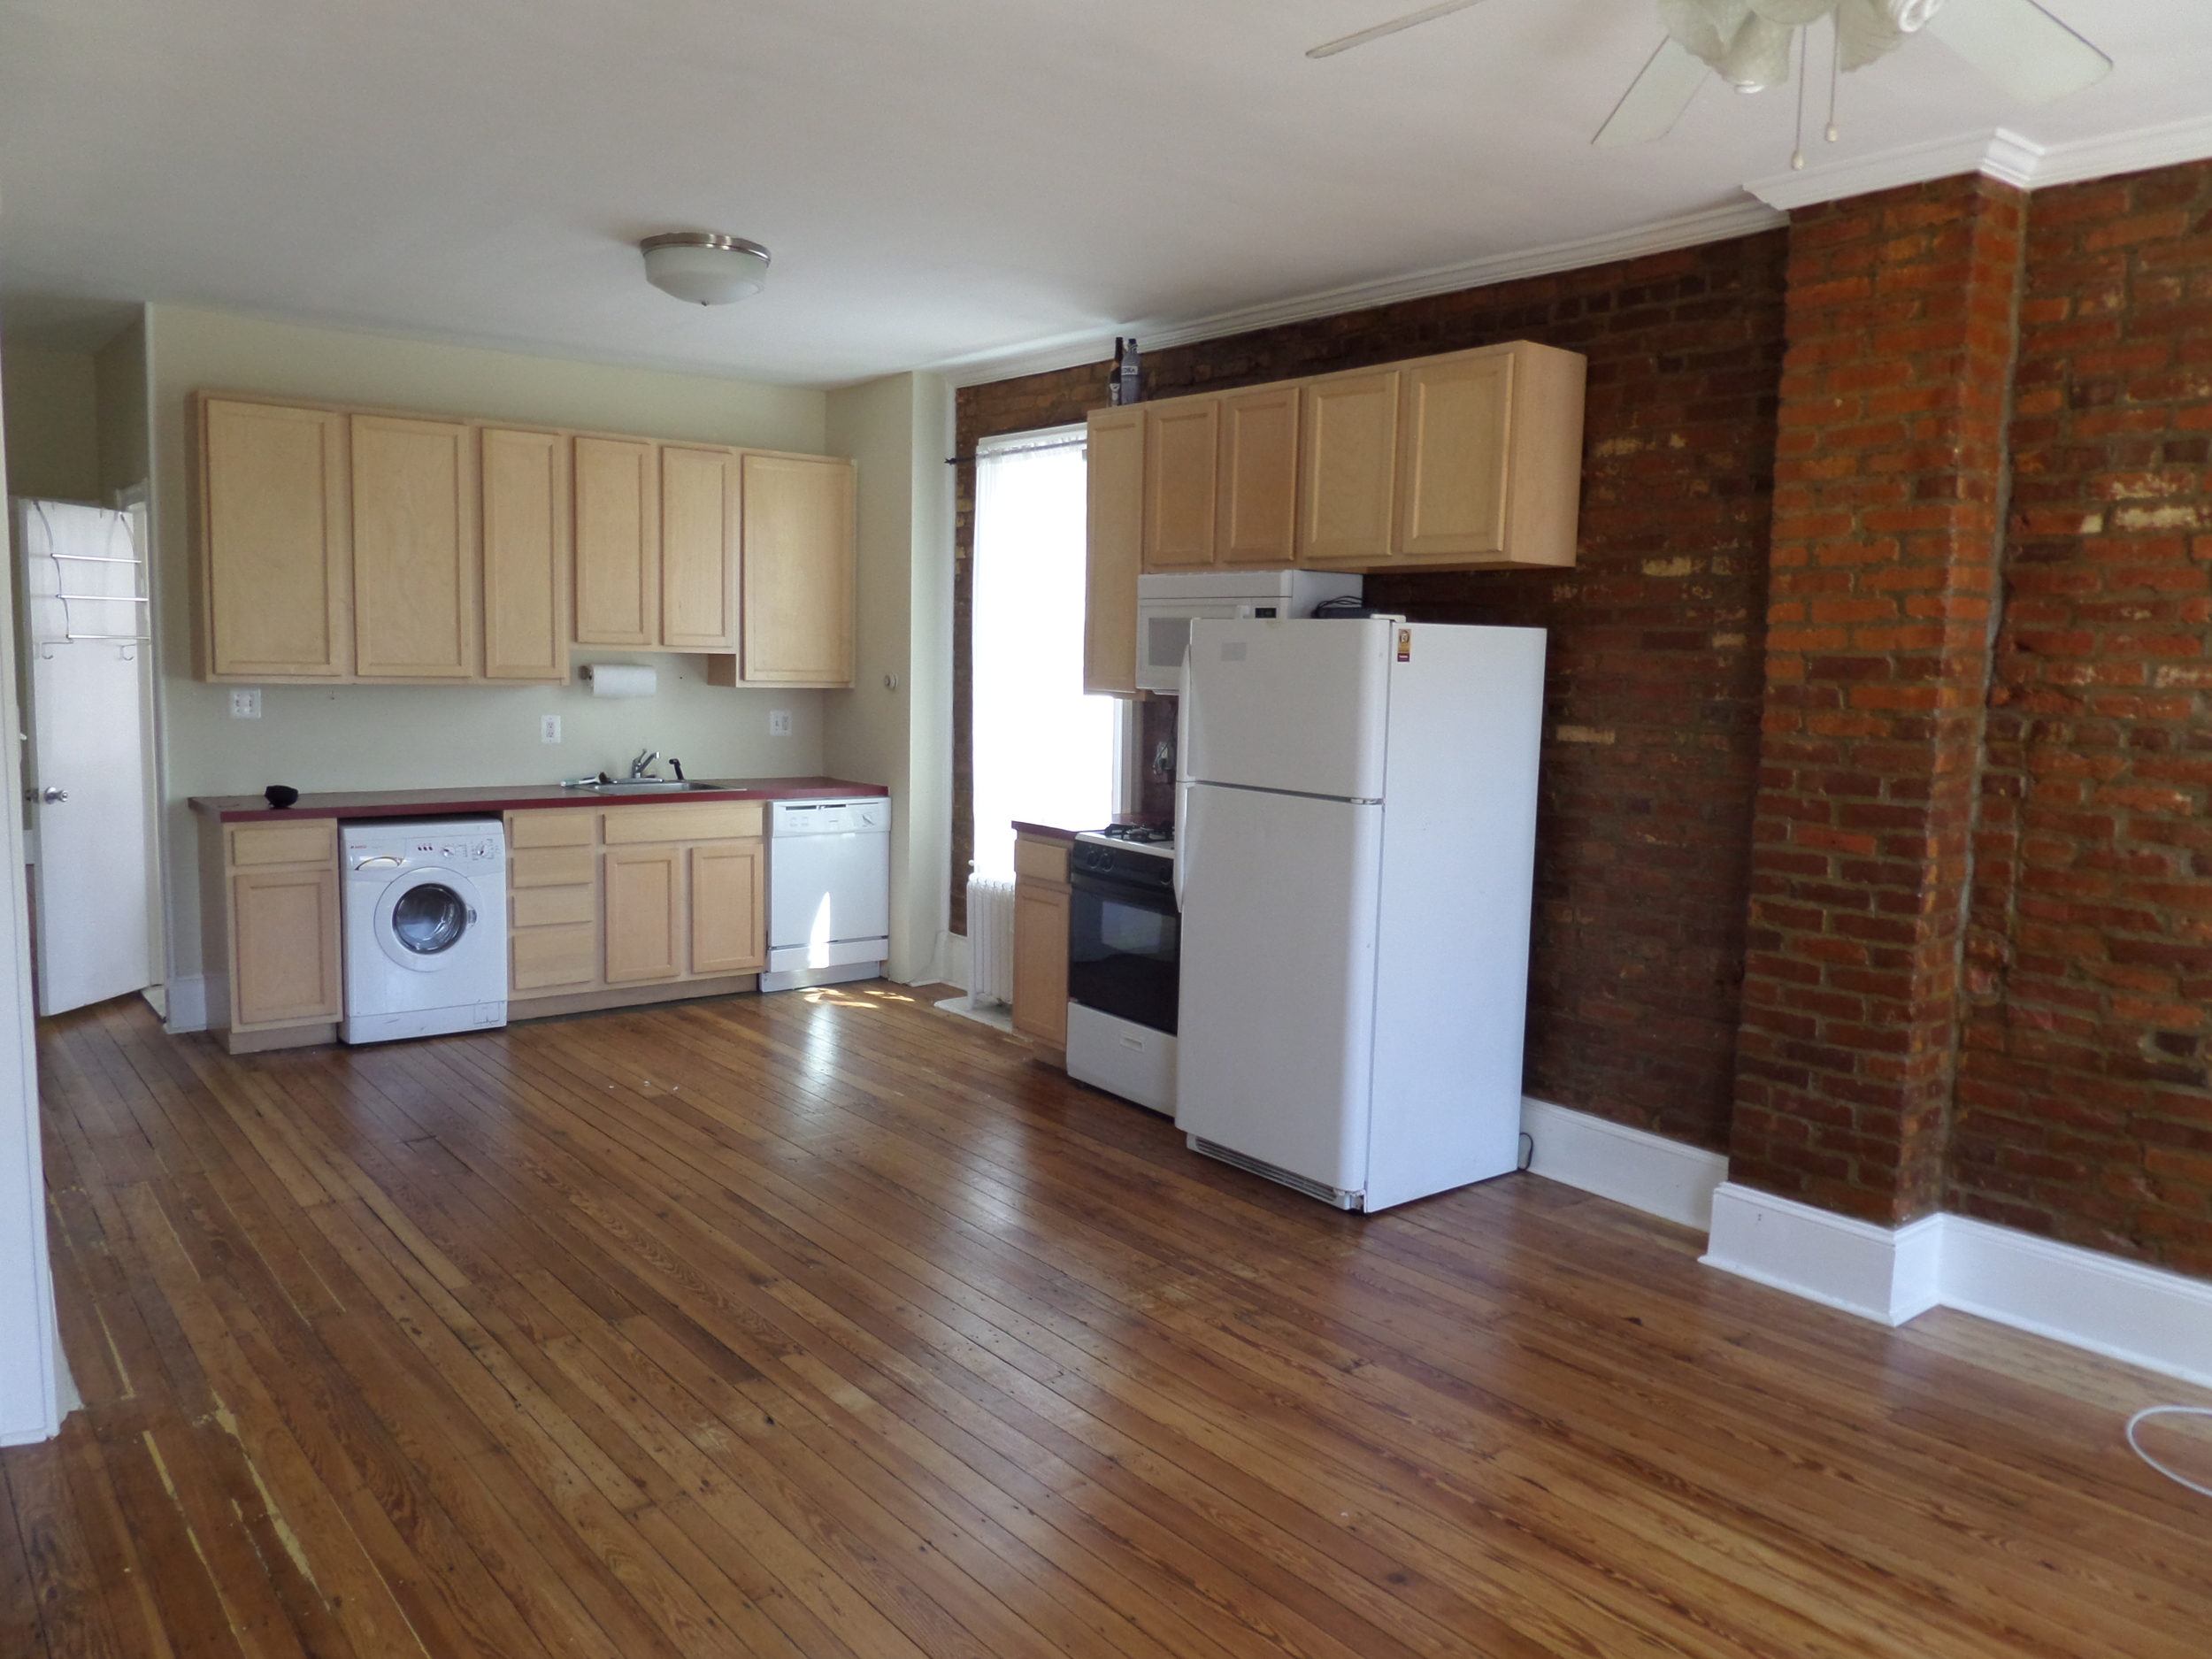 Ridge ave kitchen and floors.JPG